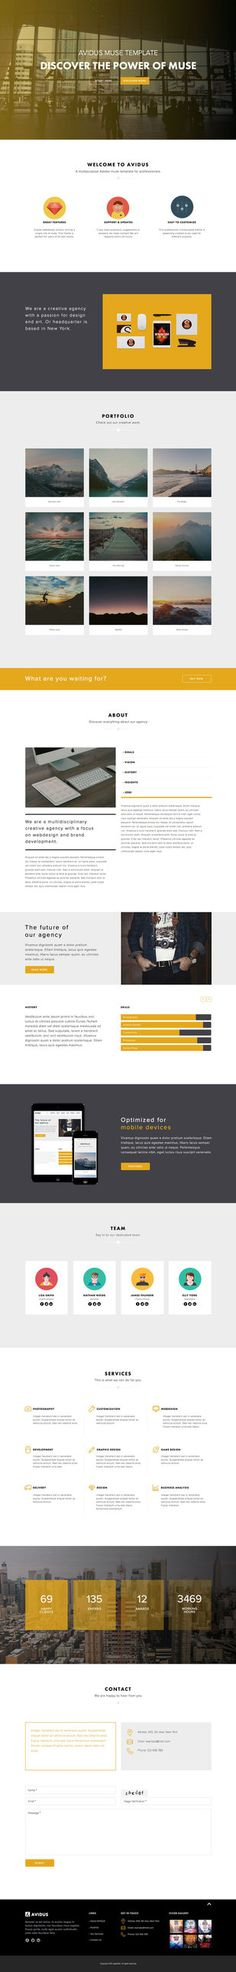 Responsive Adobe Muse Templates  Themes Free Download - 56pixels